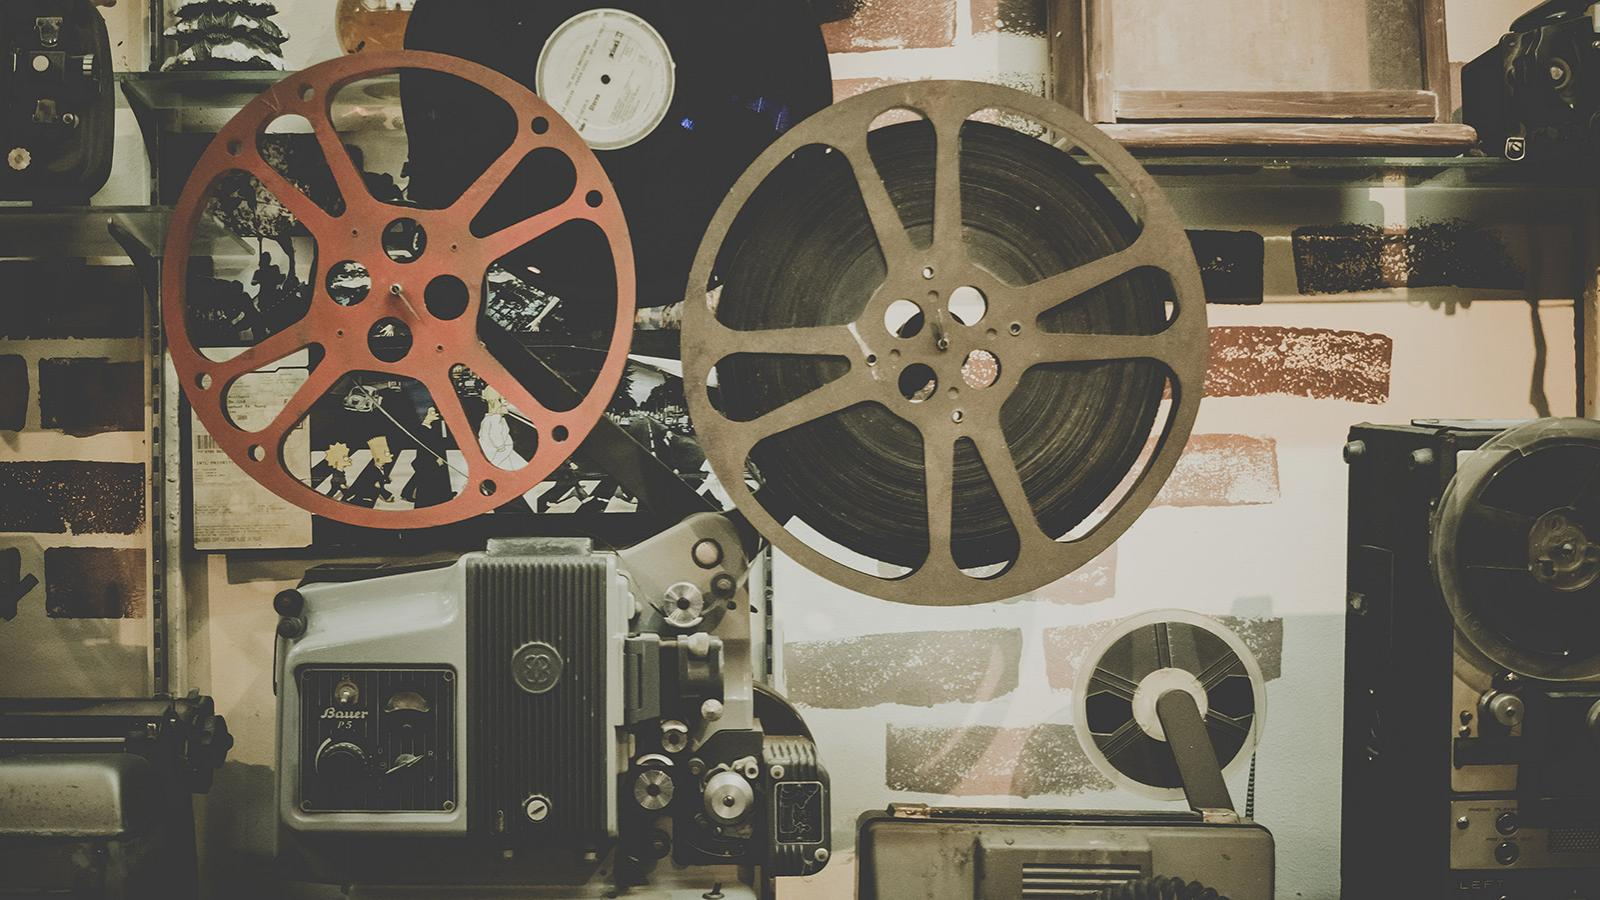 Film reels and a projector